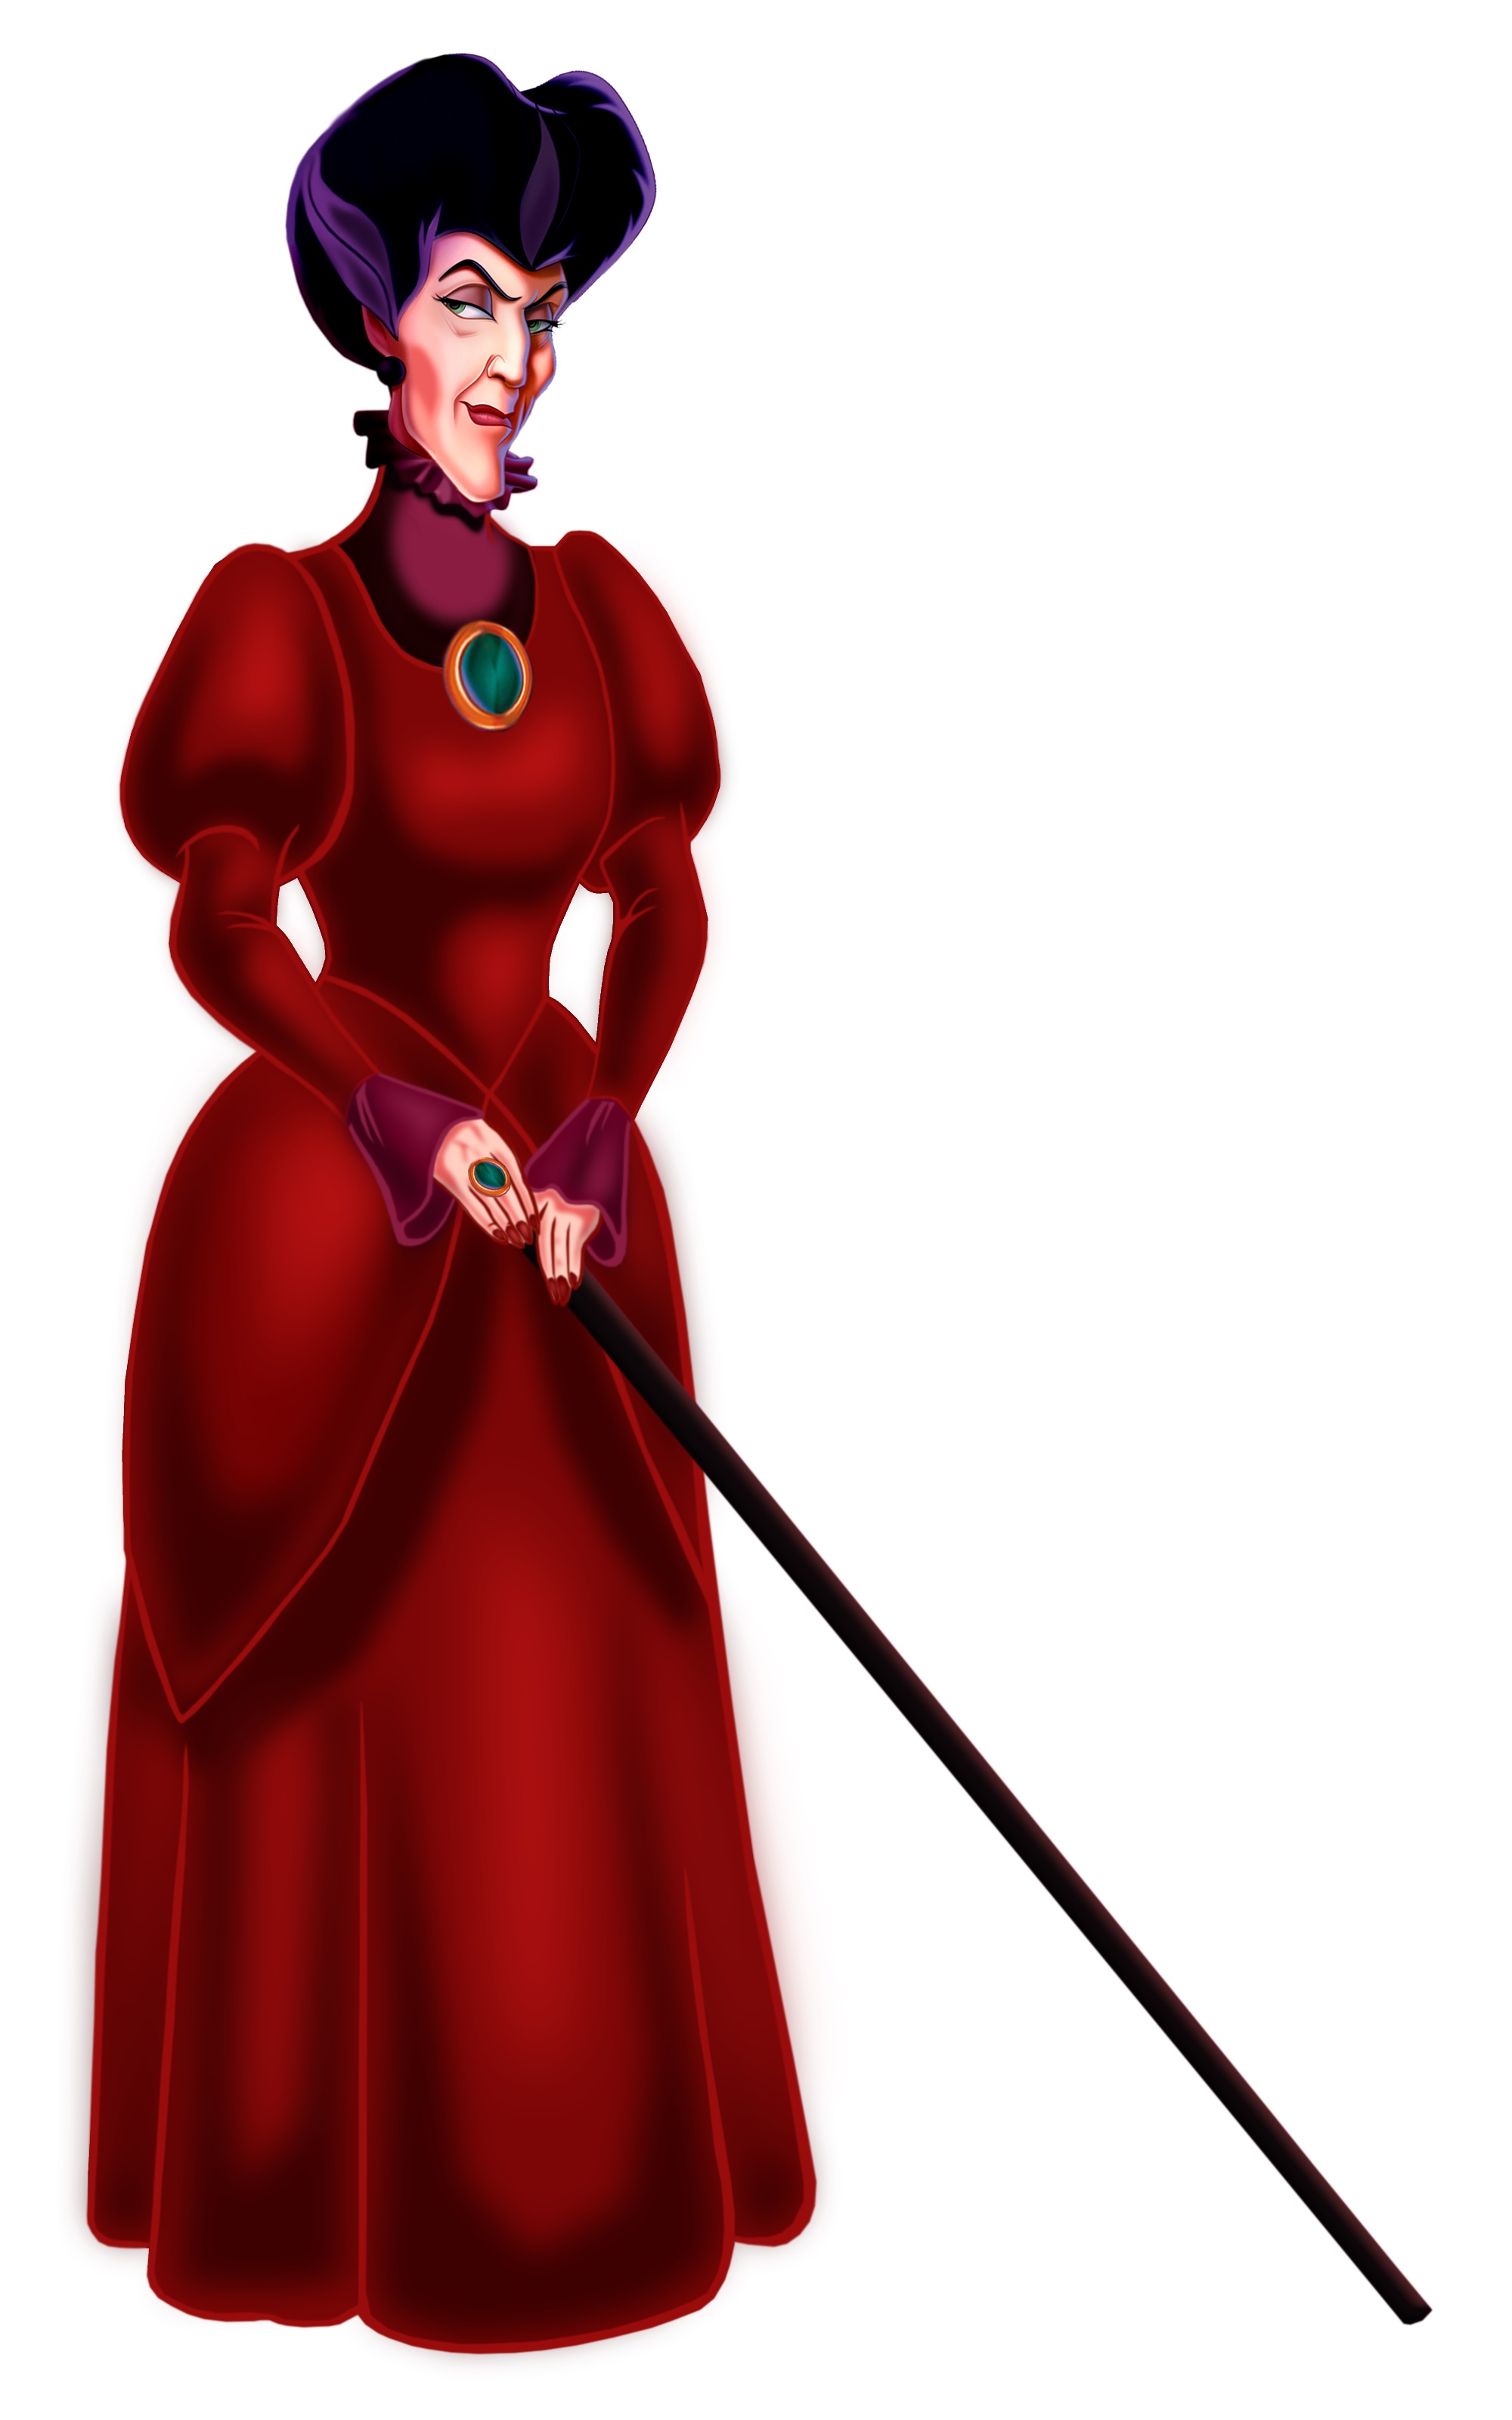 lady tremaine villains wiki fandom powered by wikia ant clipart ant clipart